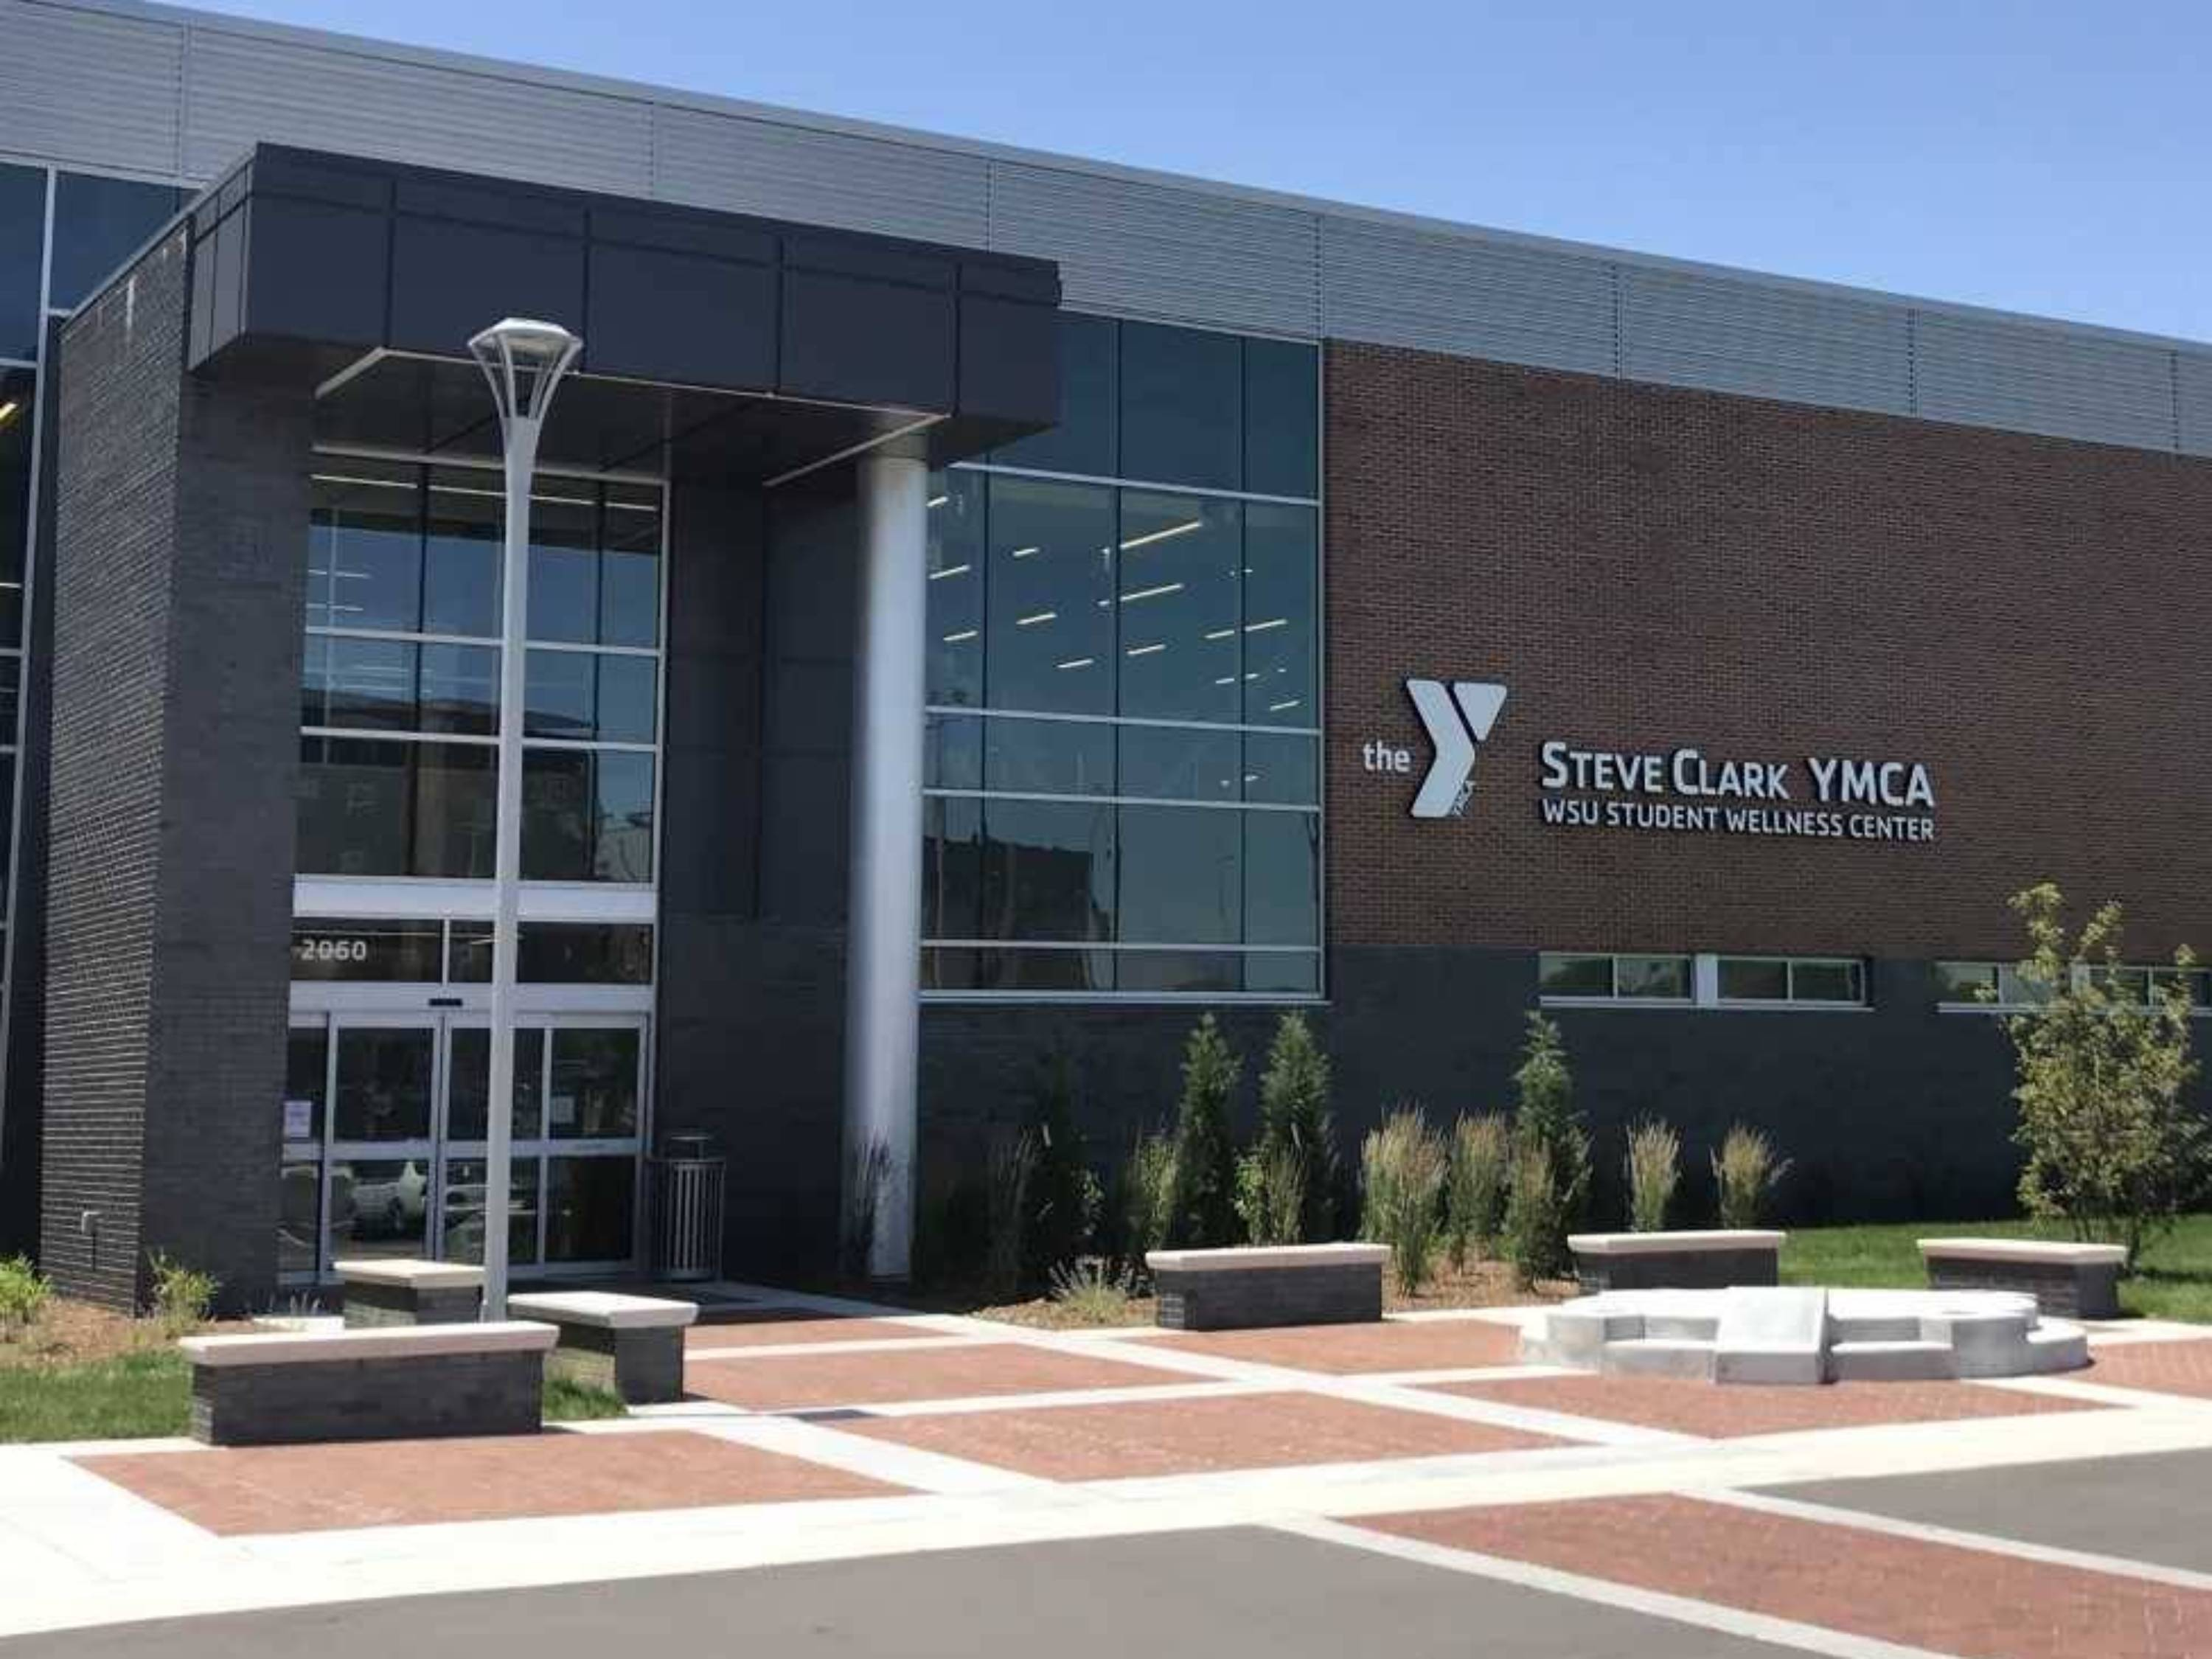 Front entrance of the Steve Clark YMCA and Student Wellness Center